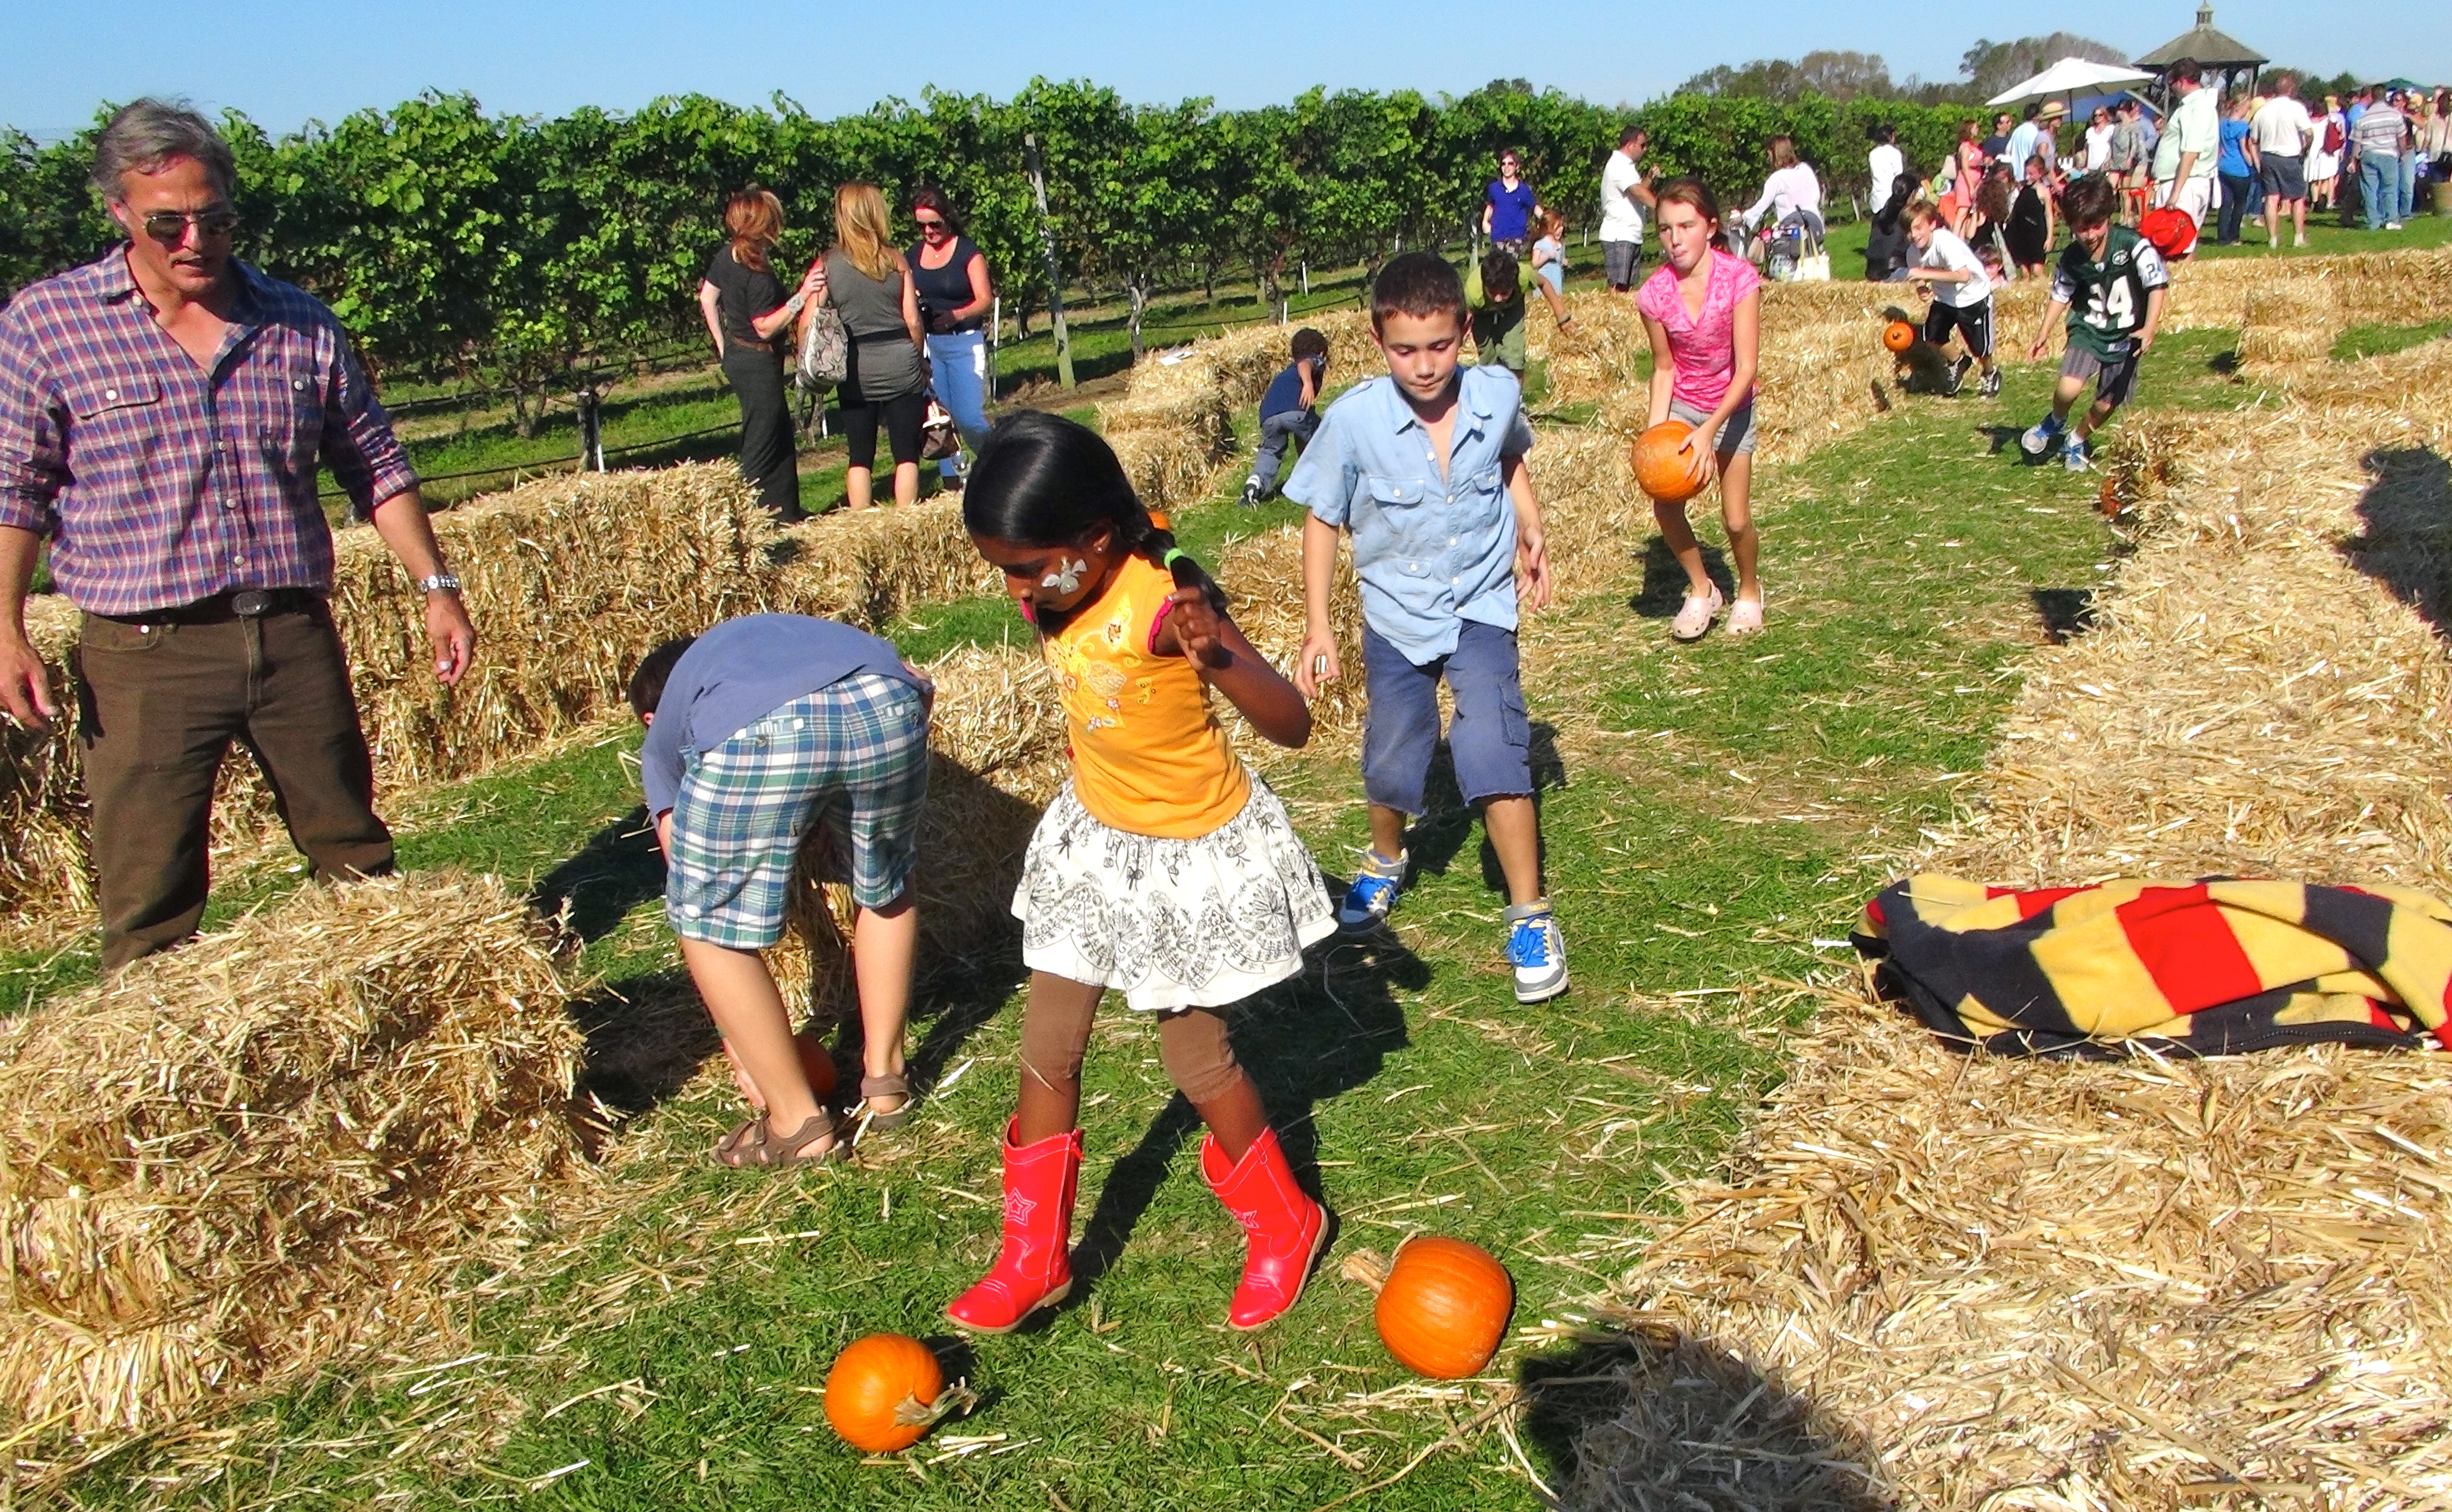 fall festival at sole east in montauk live music kids activities